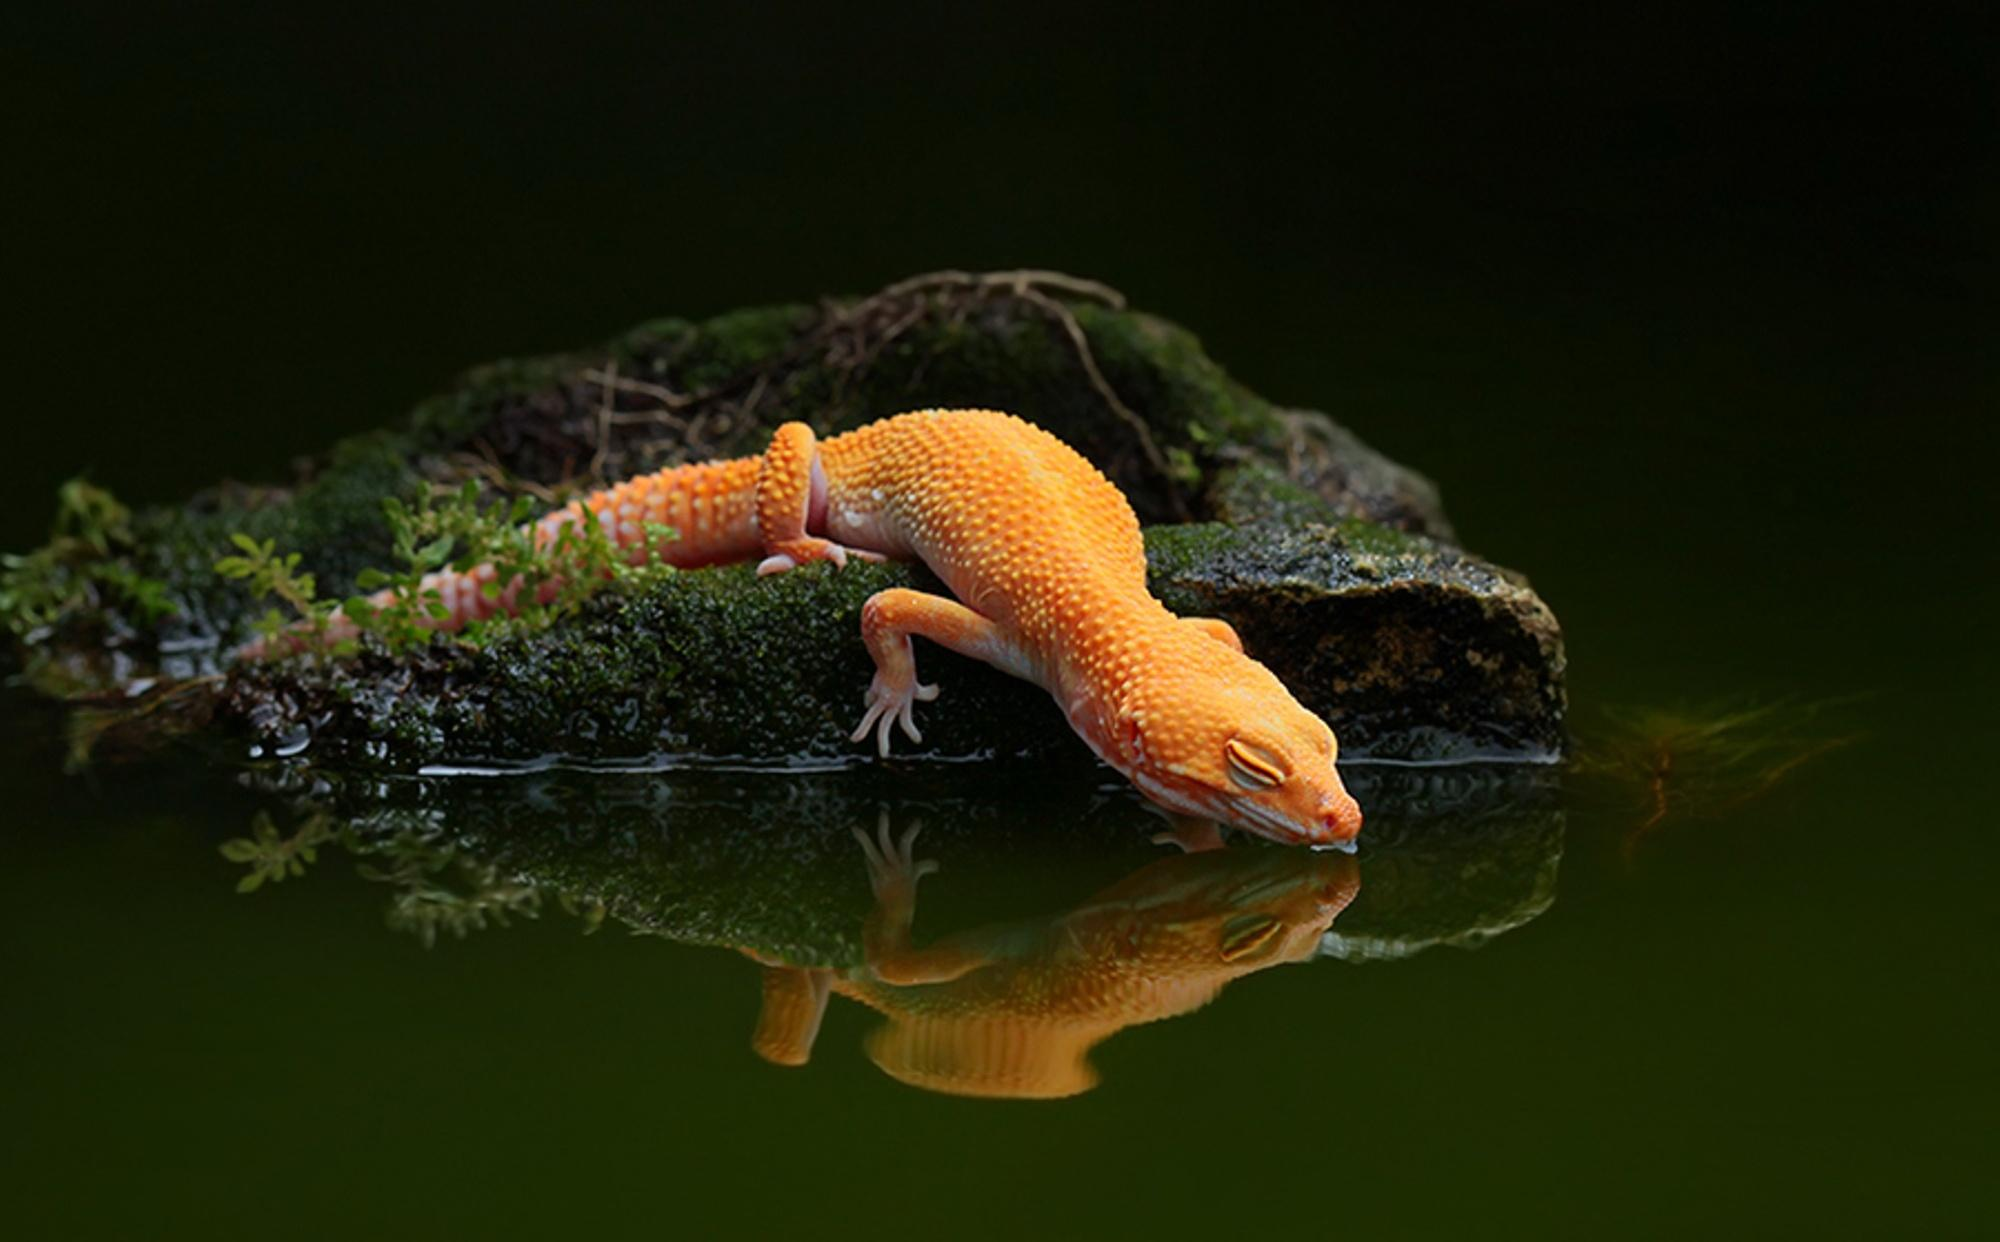 lizard, Water, Reflection, Water, Gecko Wallpapers HD / Desktop and